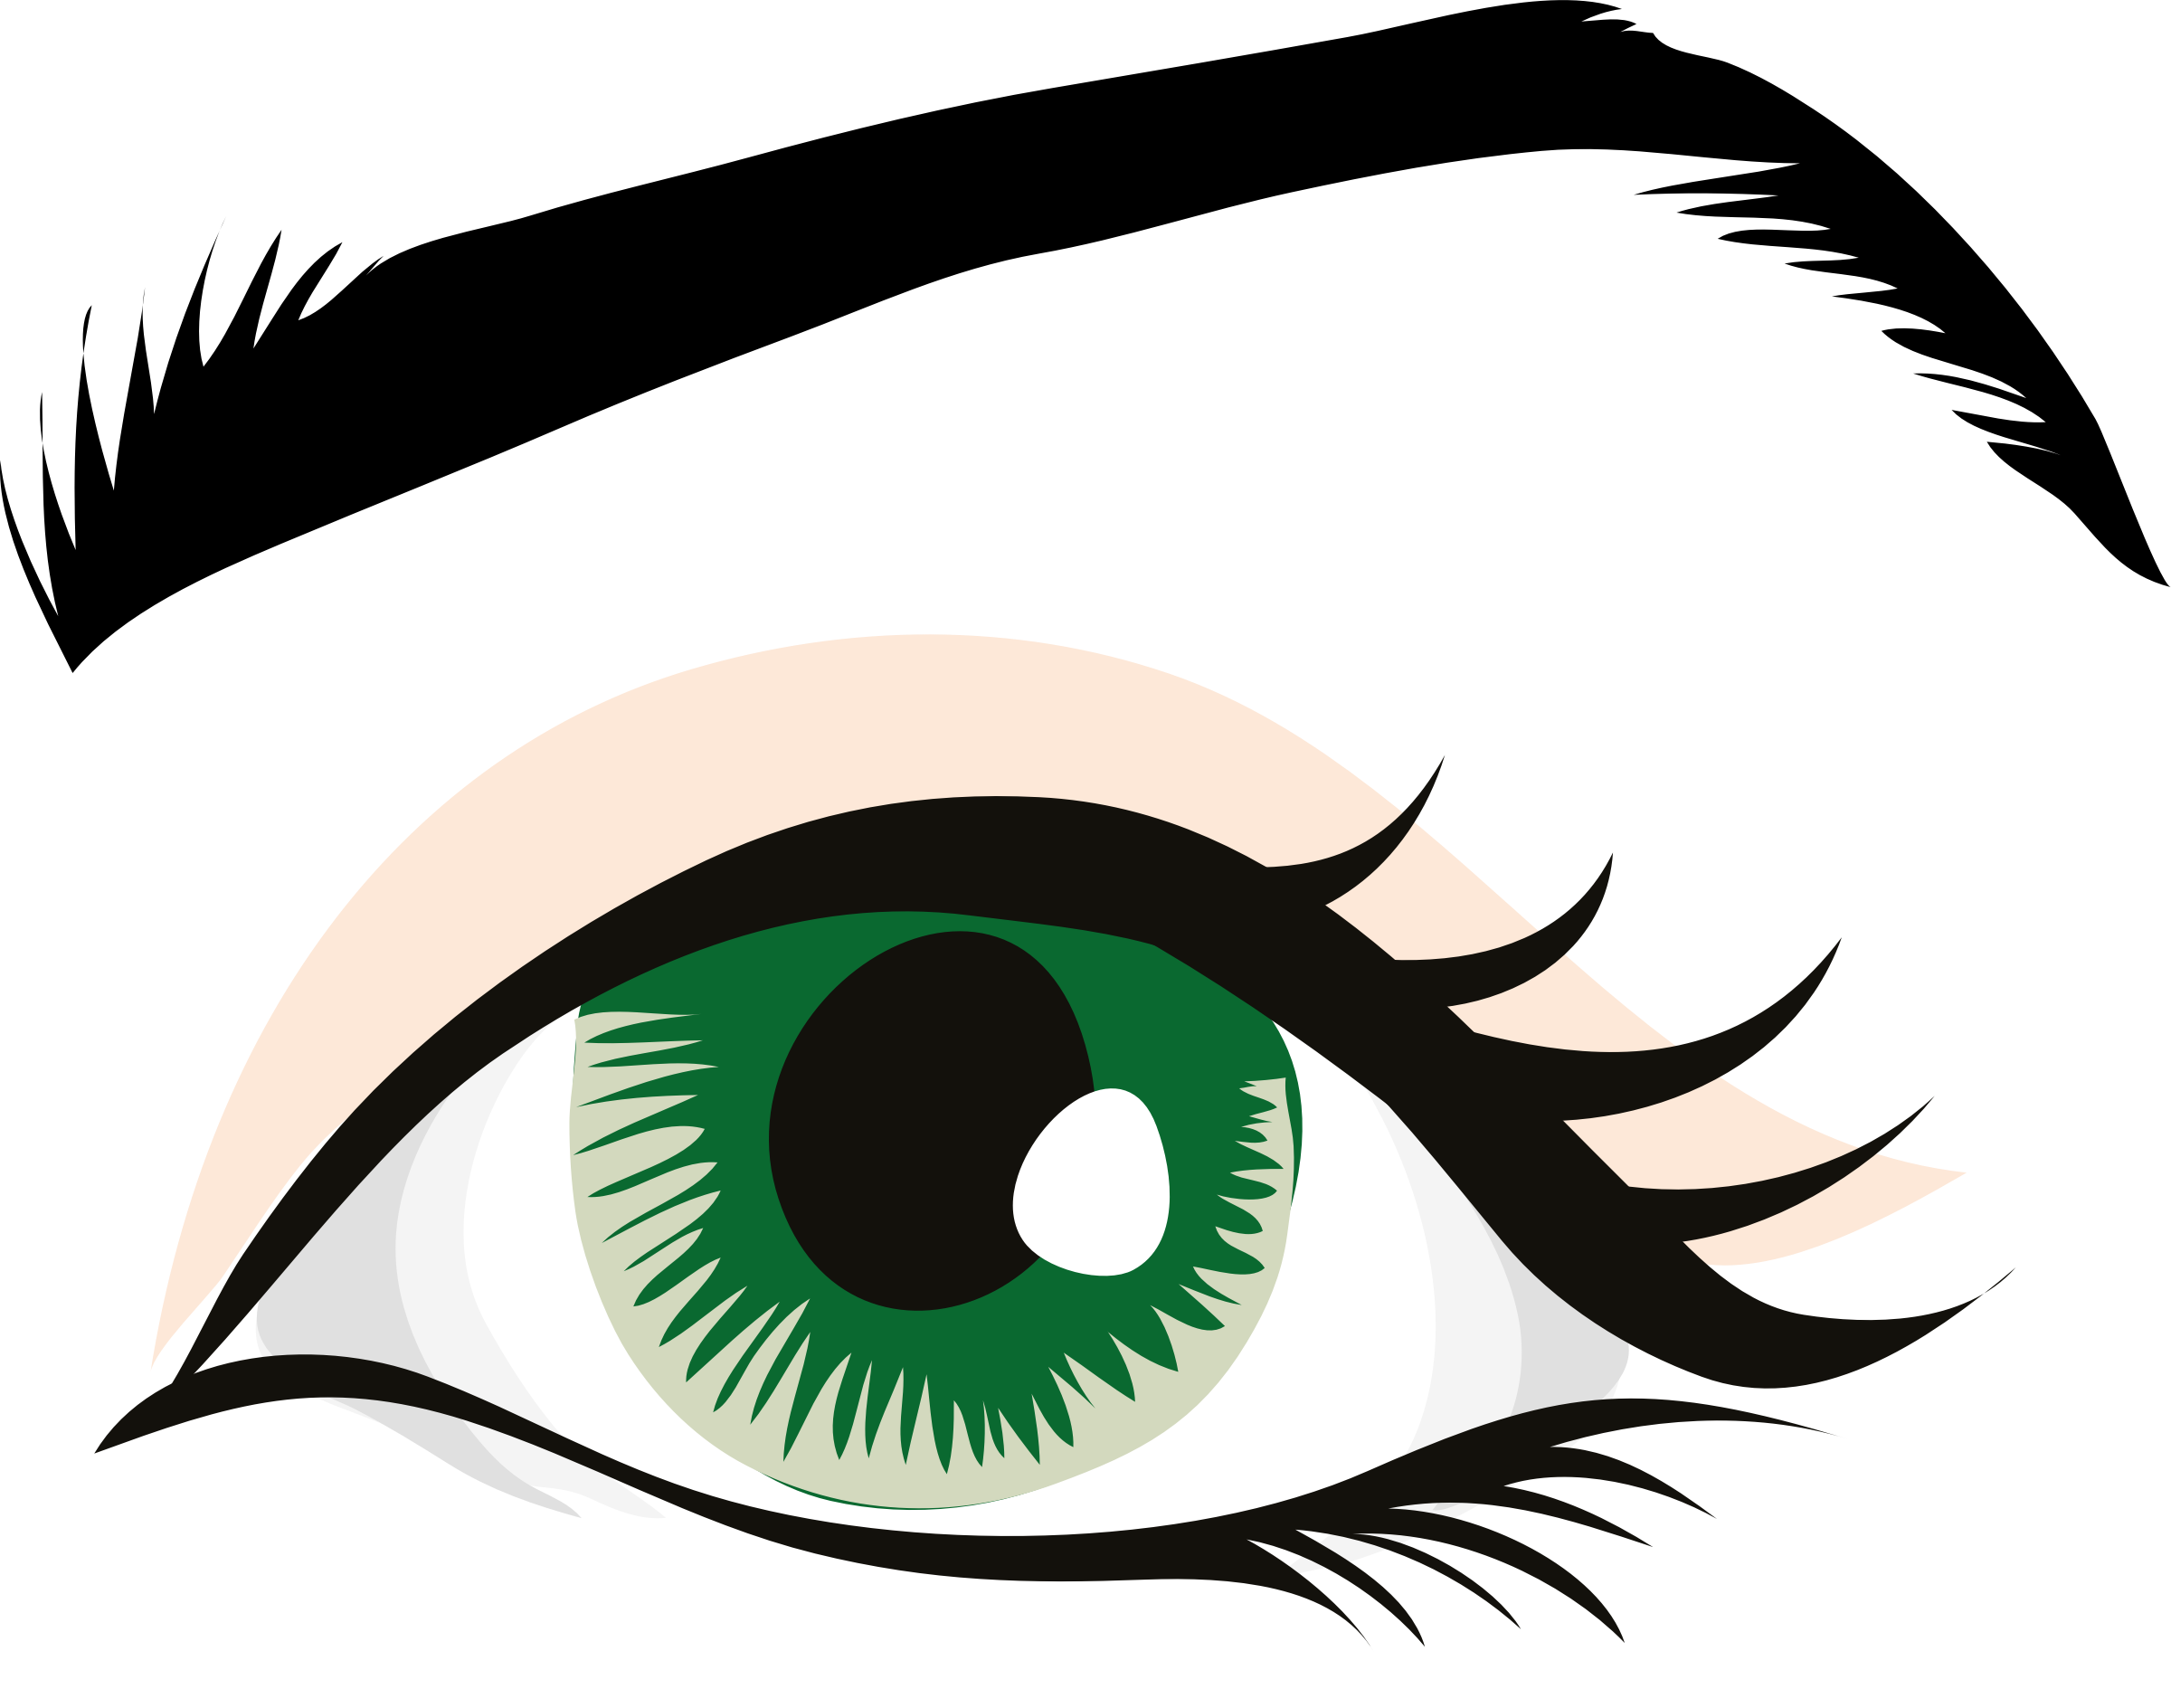 Pupil drawing body. Human eye color clip